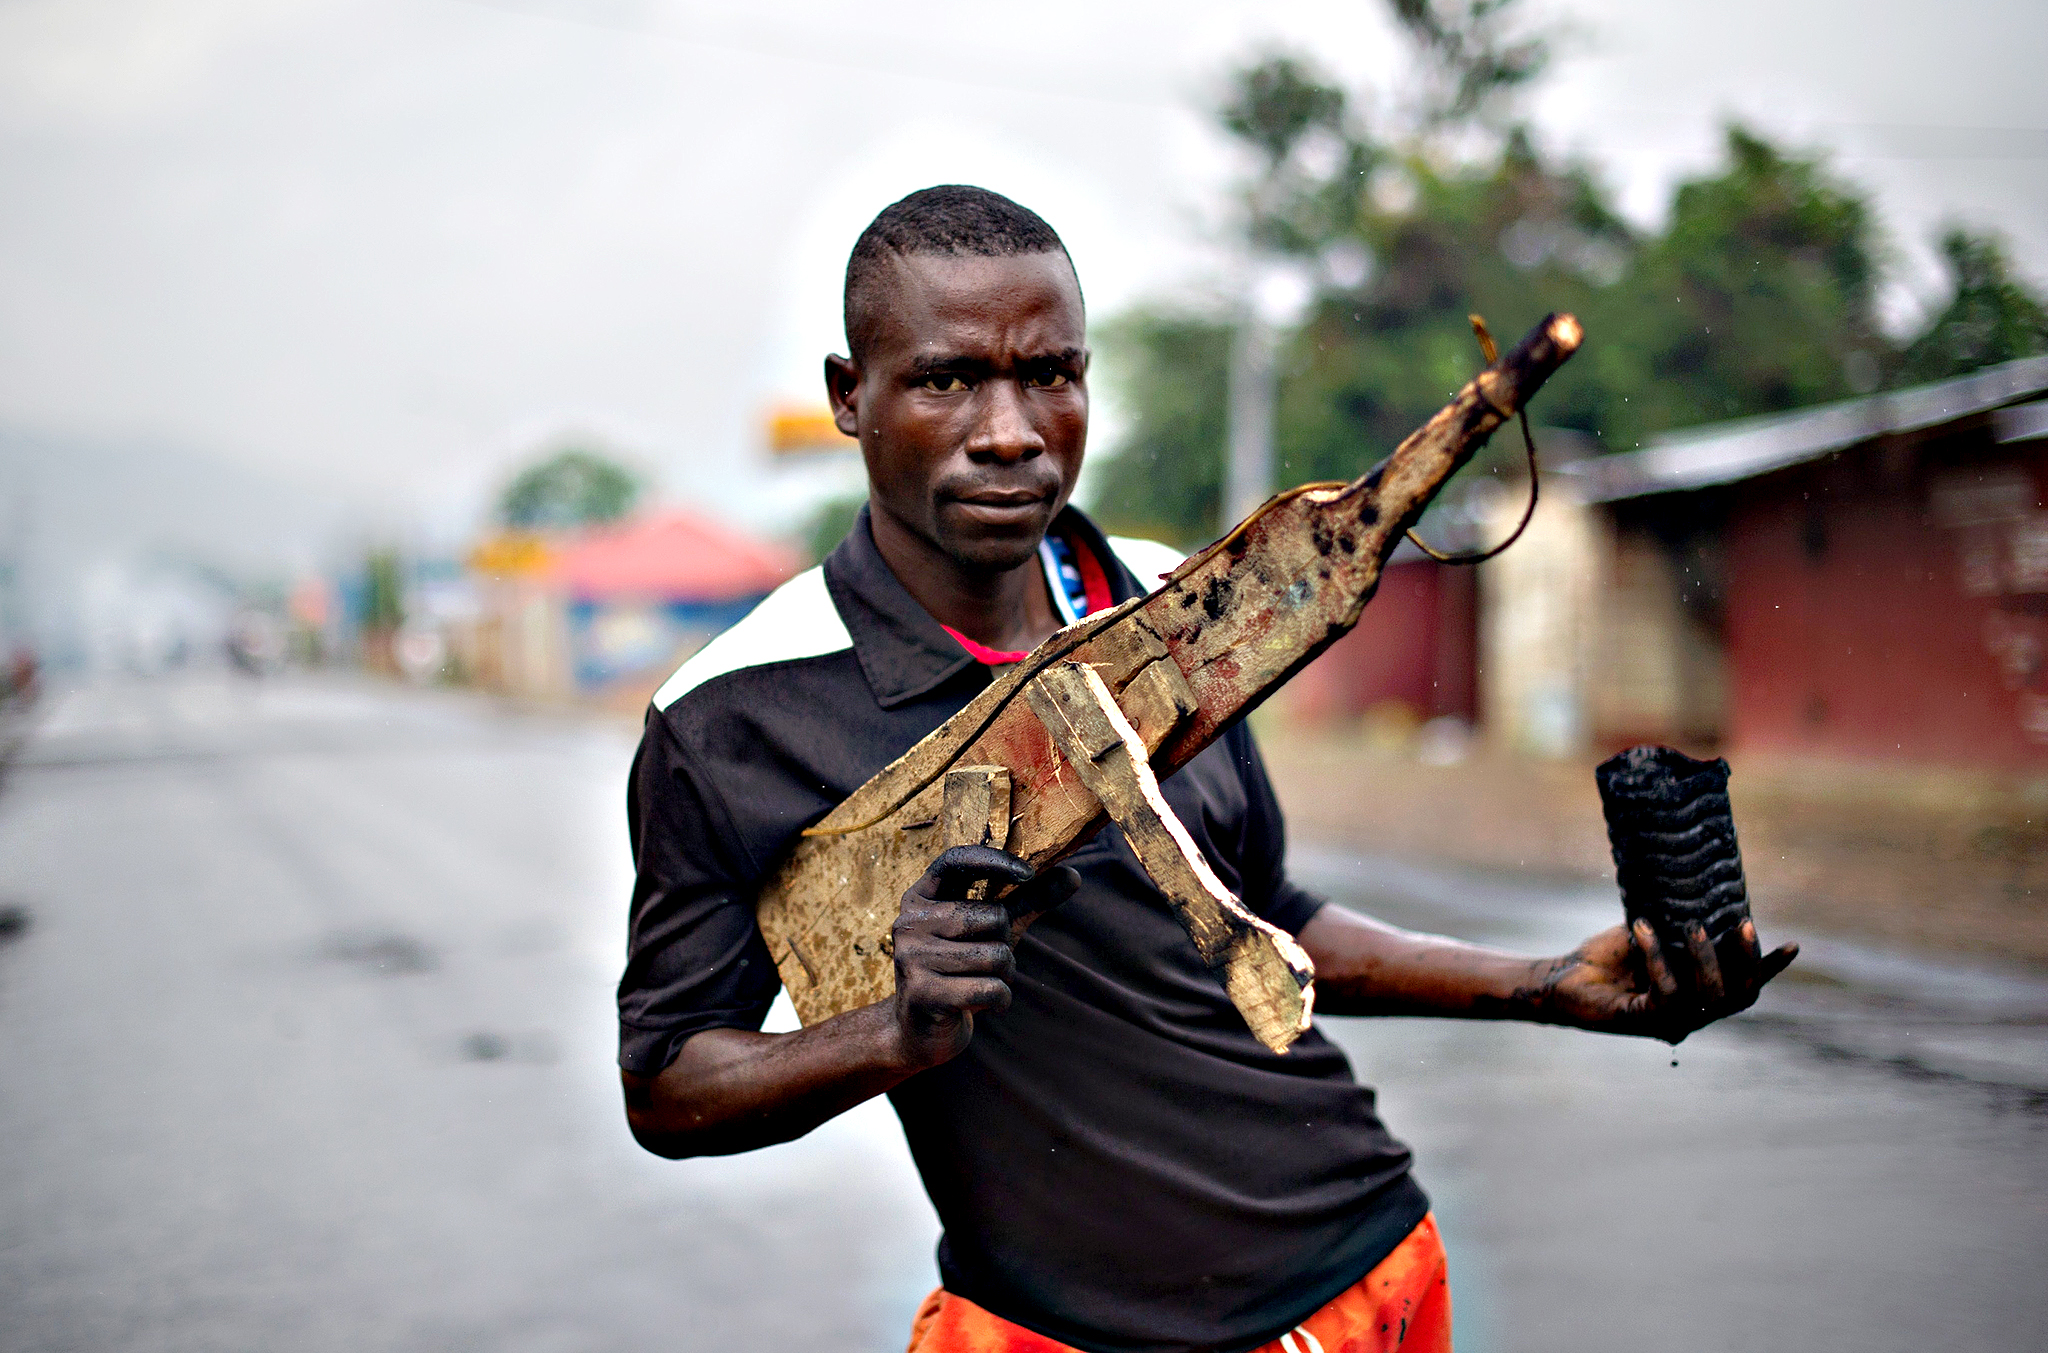 A man poses with a wooden rifle in the Musaga neighbourhood in Bujumbura, Burundi on May 5, 2015. Burundi, where a 13-year civil war between Tutsis and Hutus ended only in 2006, has been rocked by violent protests since the ruling party designated President Pierre Nkurunziza to run in elections for a third term, in apparent defiance of the constitution and the Arusha accords which ended the war.